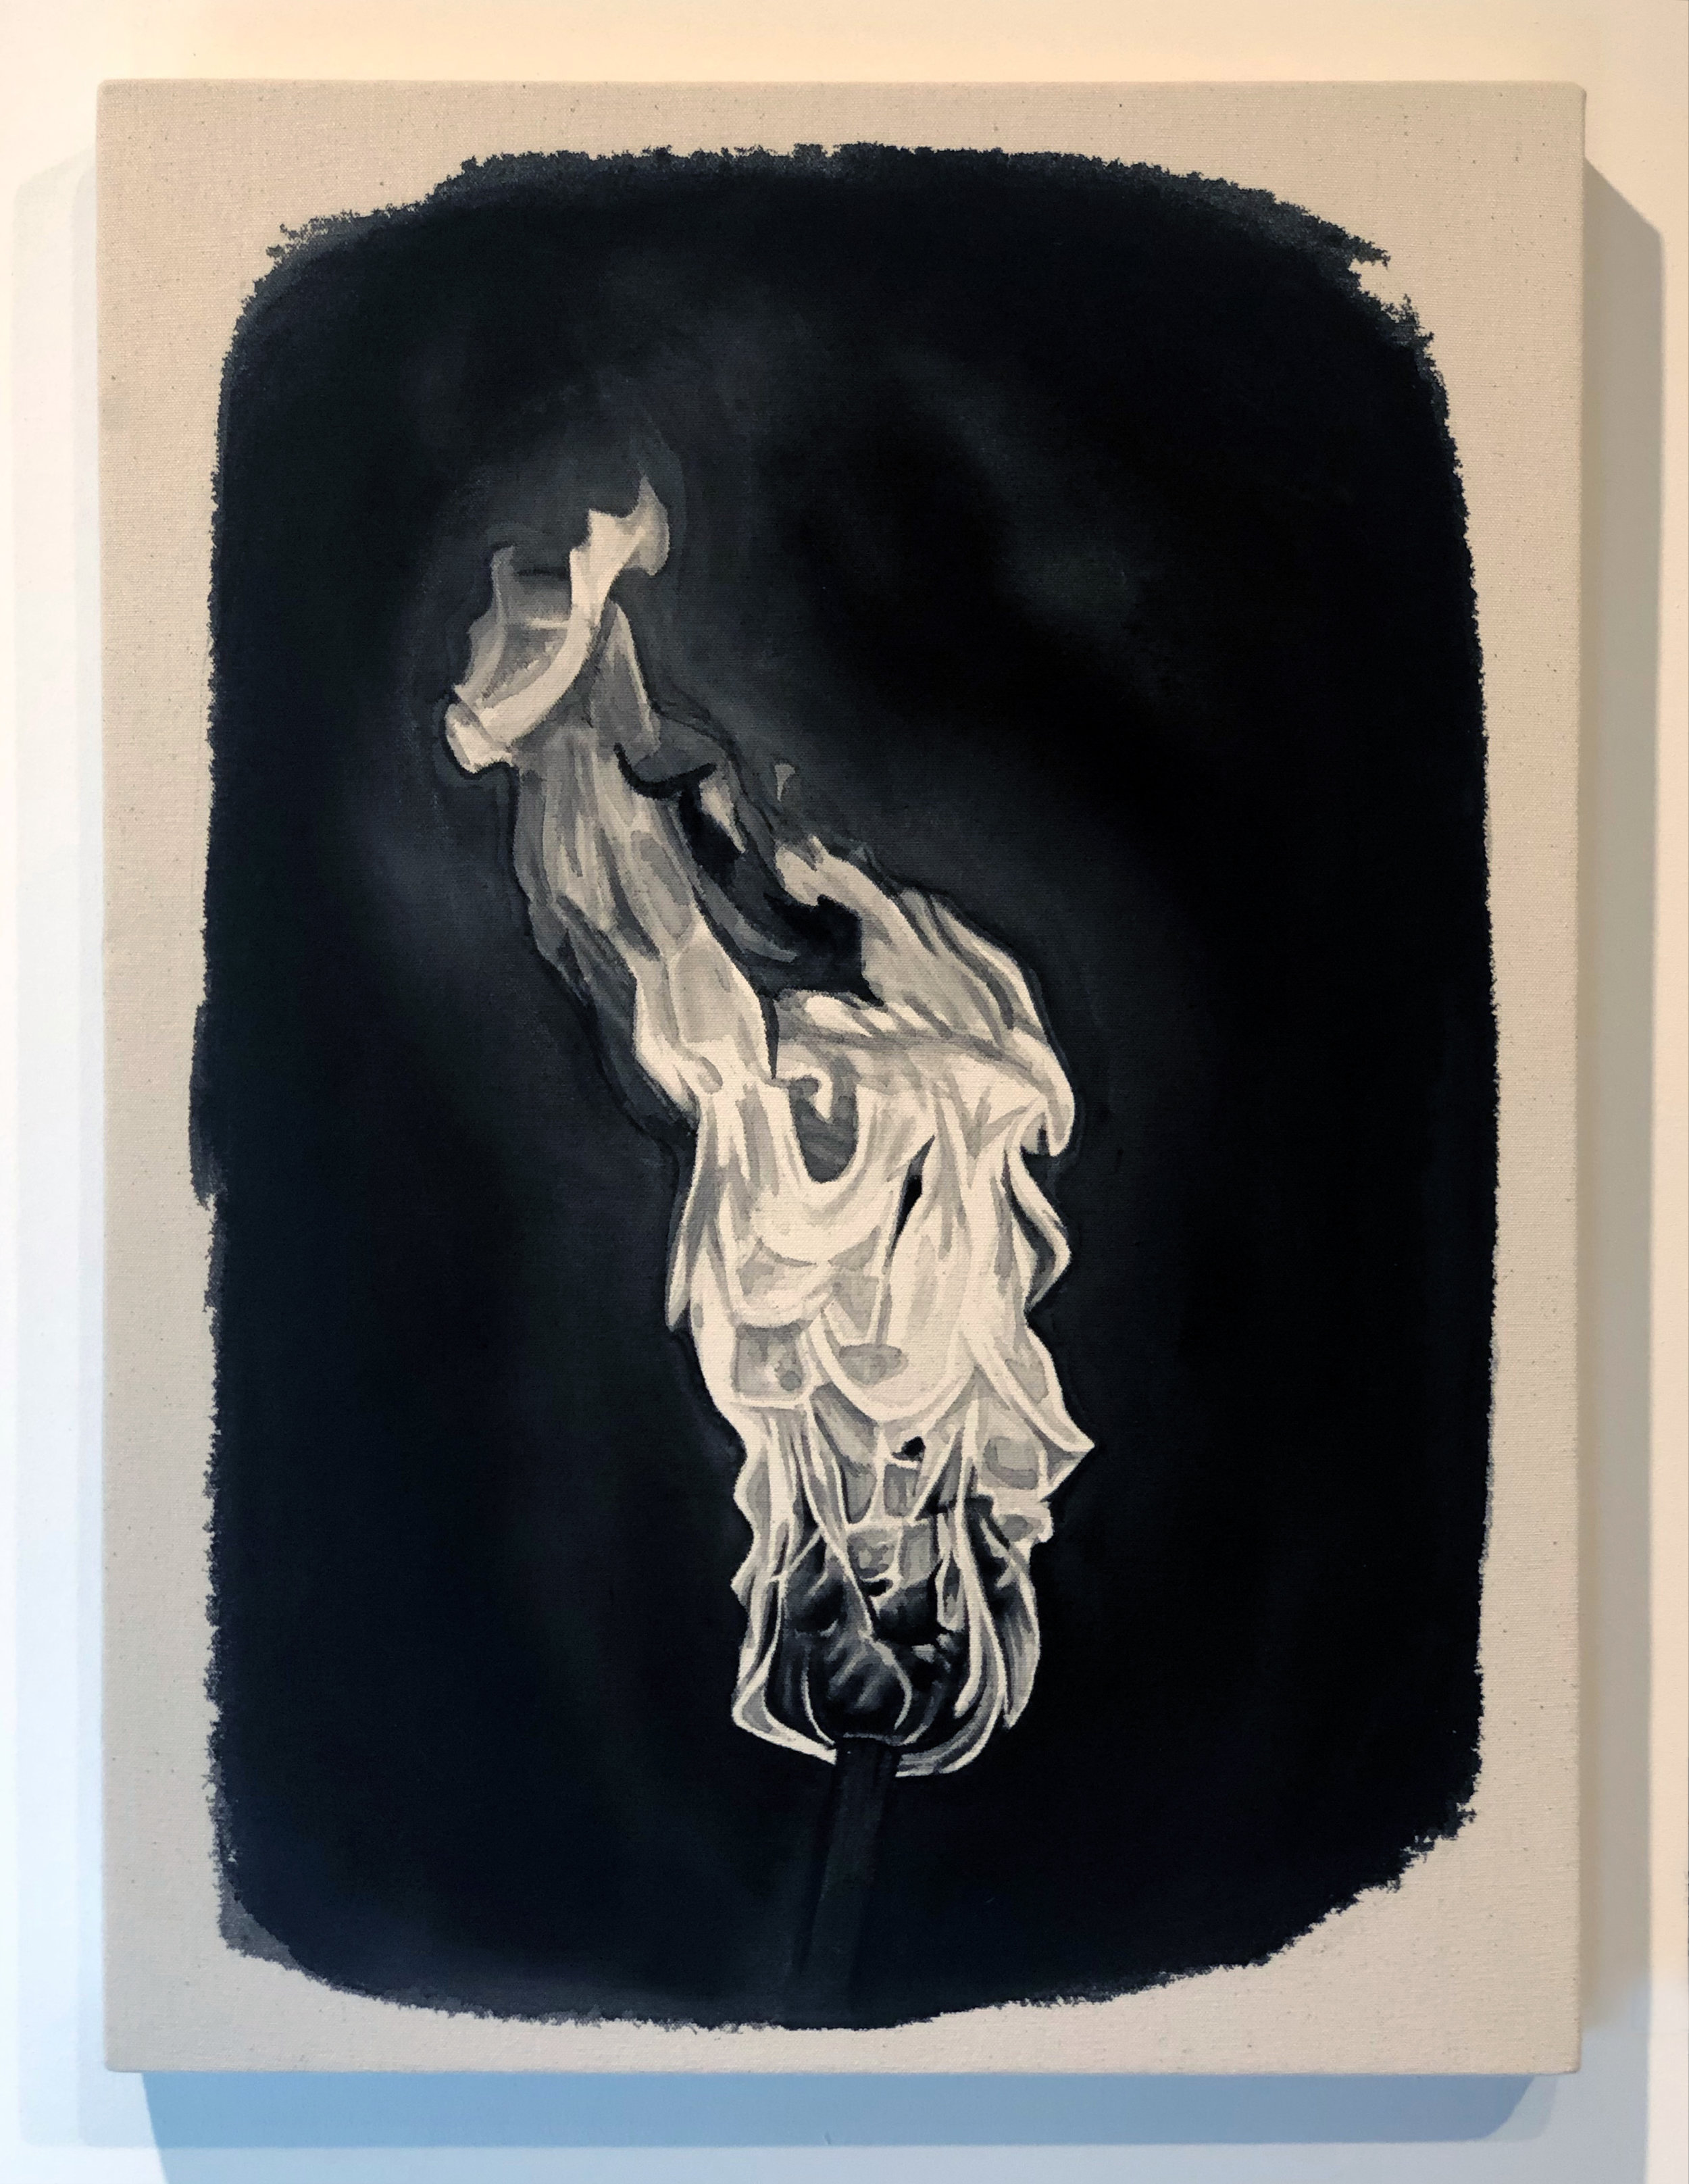 Torch,  2019 Black gesso on canvas 23.75 x 17.75 inches (60.3cm x 45cm)